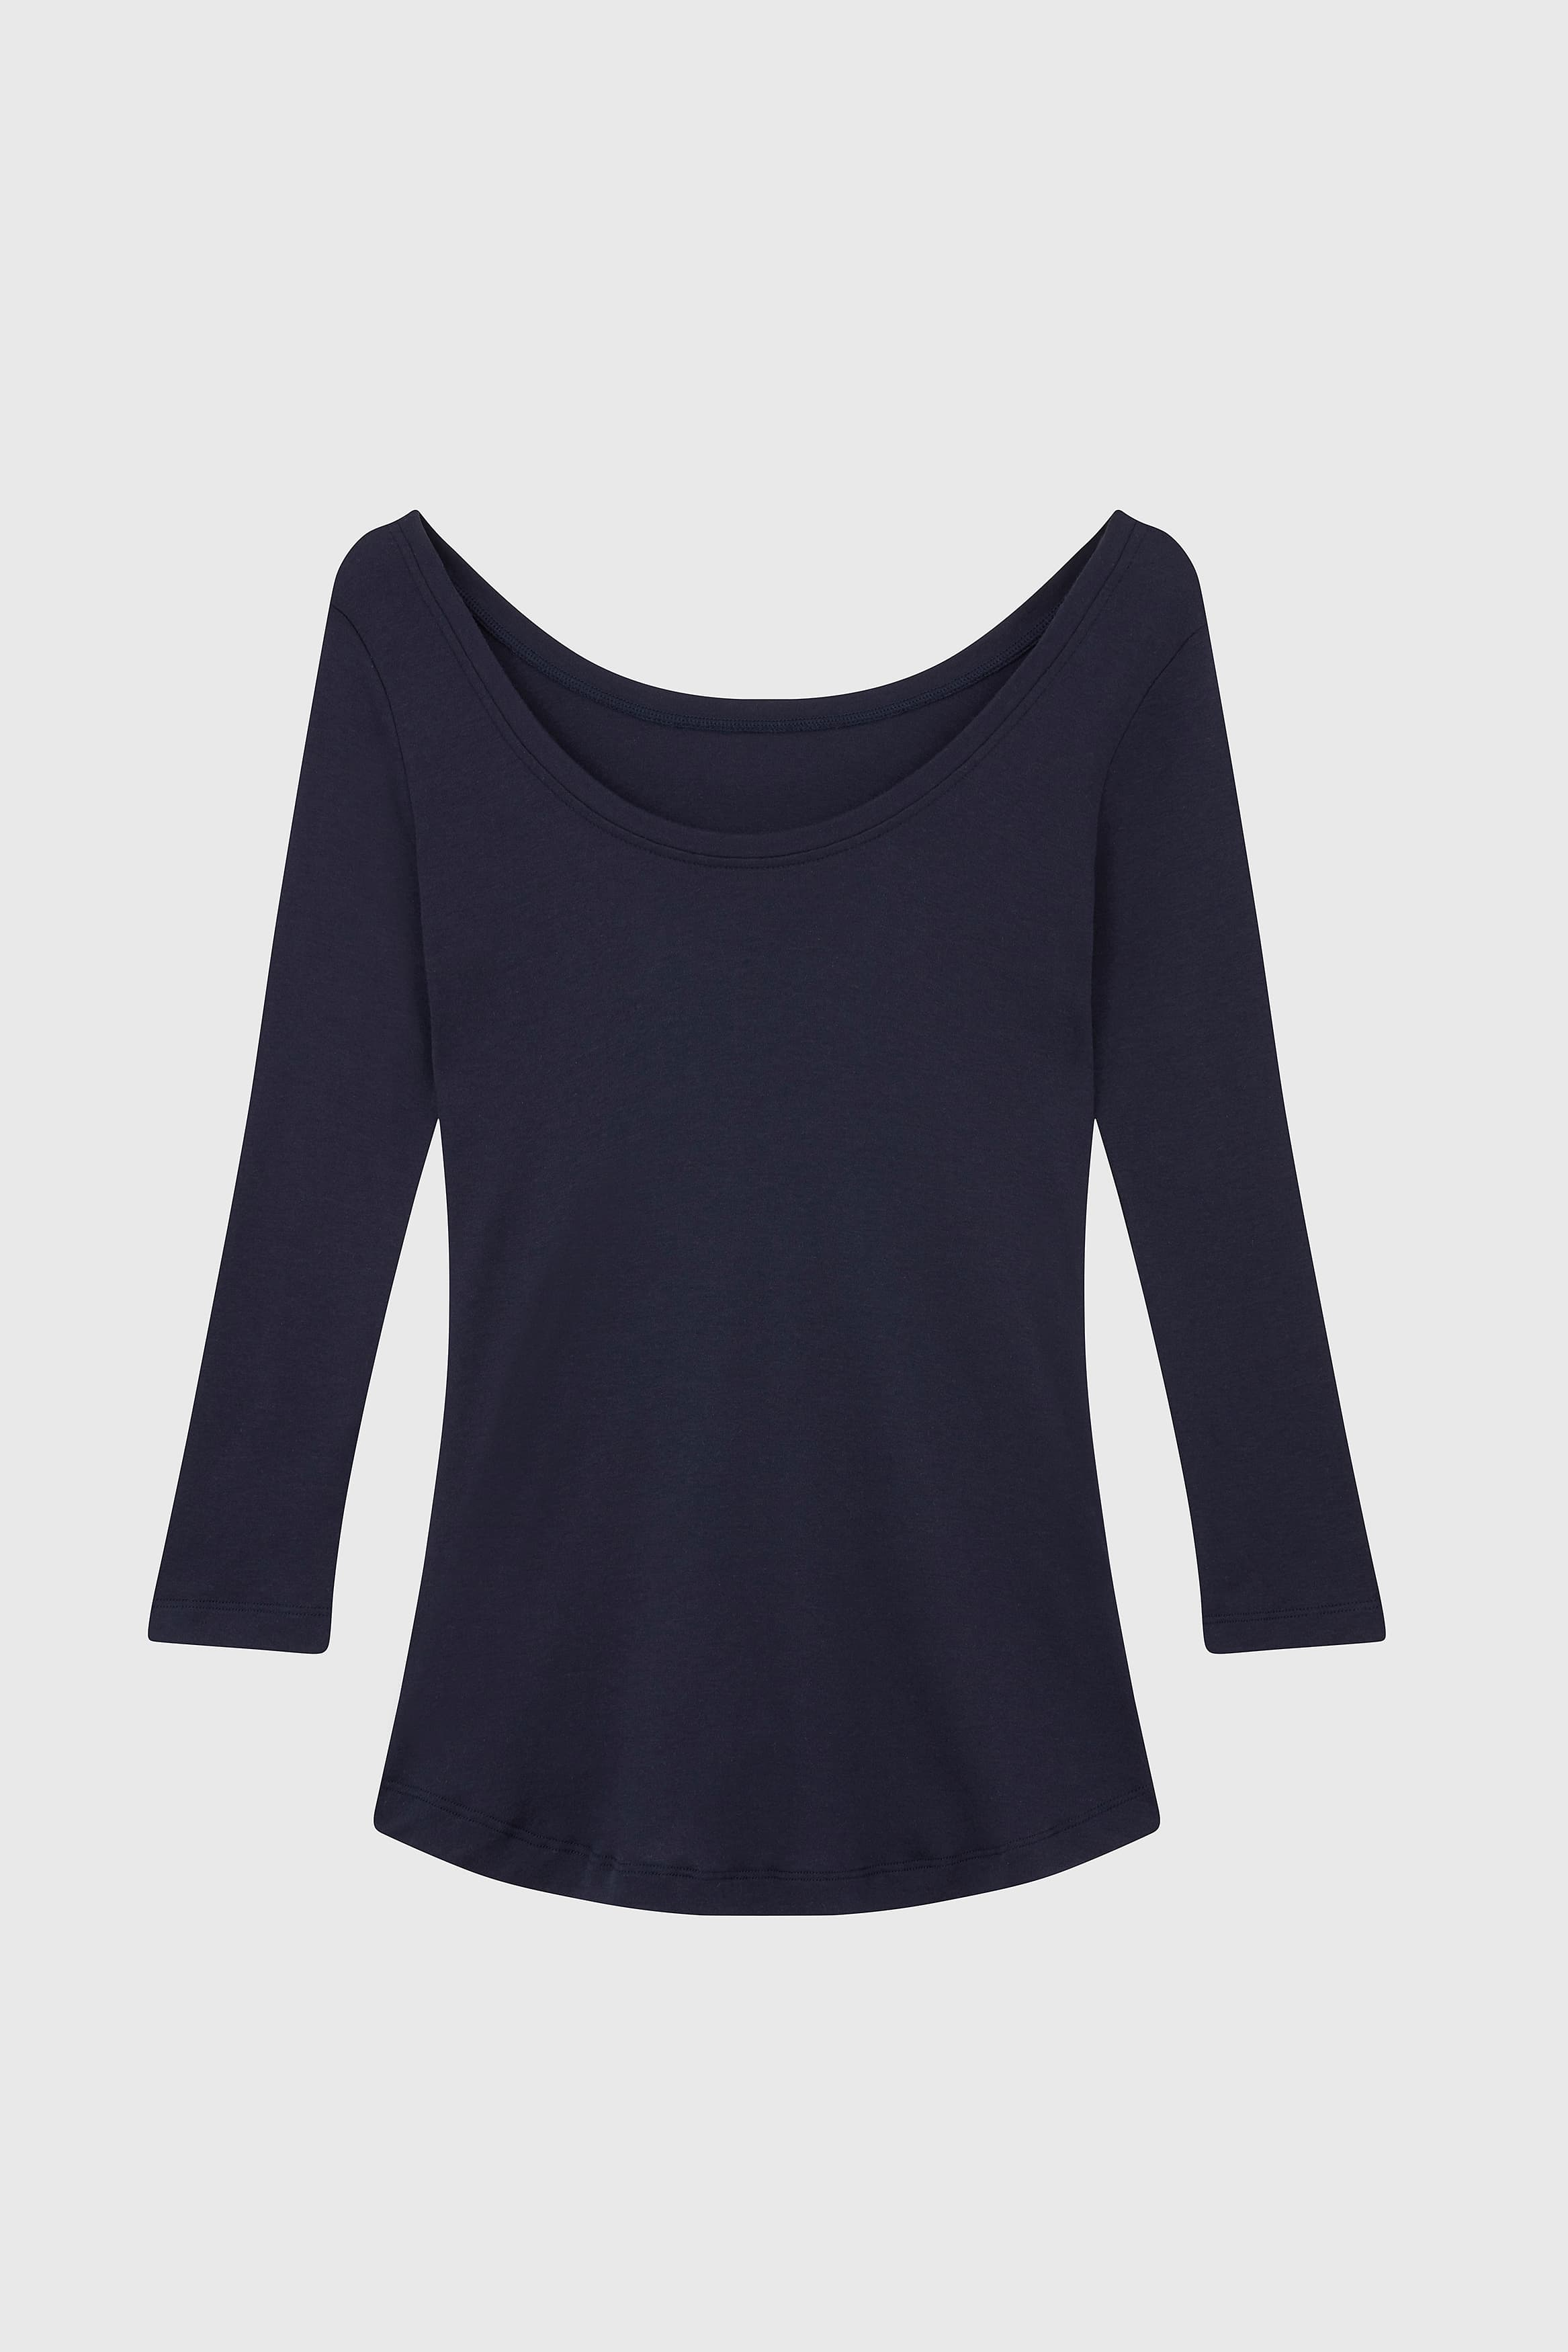 3/4 Sleeve Boat Neck Cotton Modal Blend T-Shirt 3/4 Sleeve T-shirt Lavender Hill Clothing